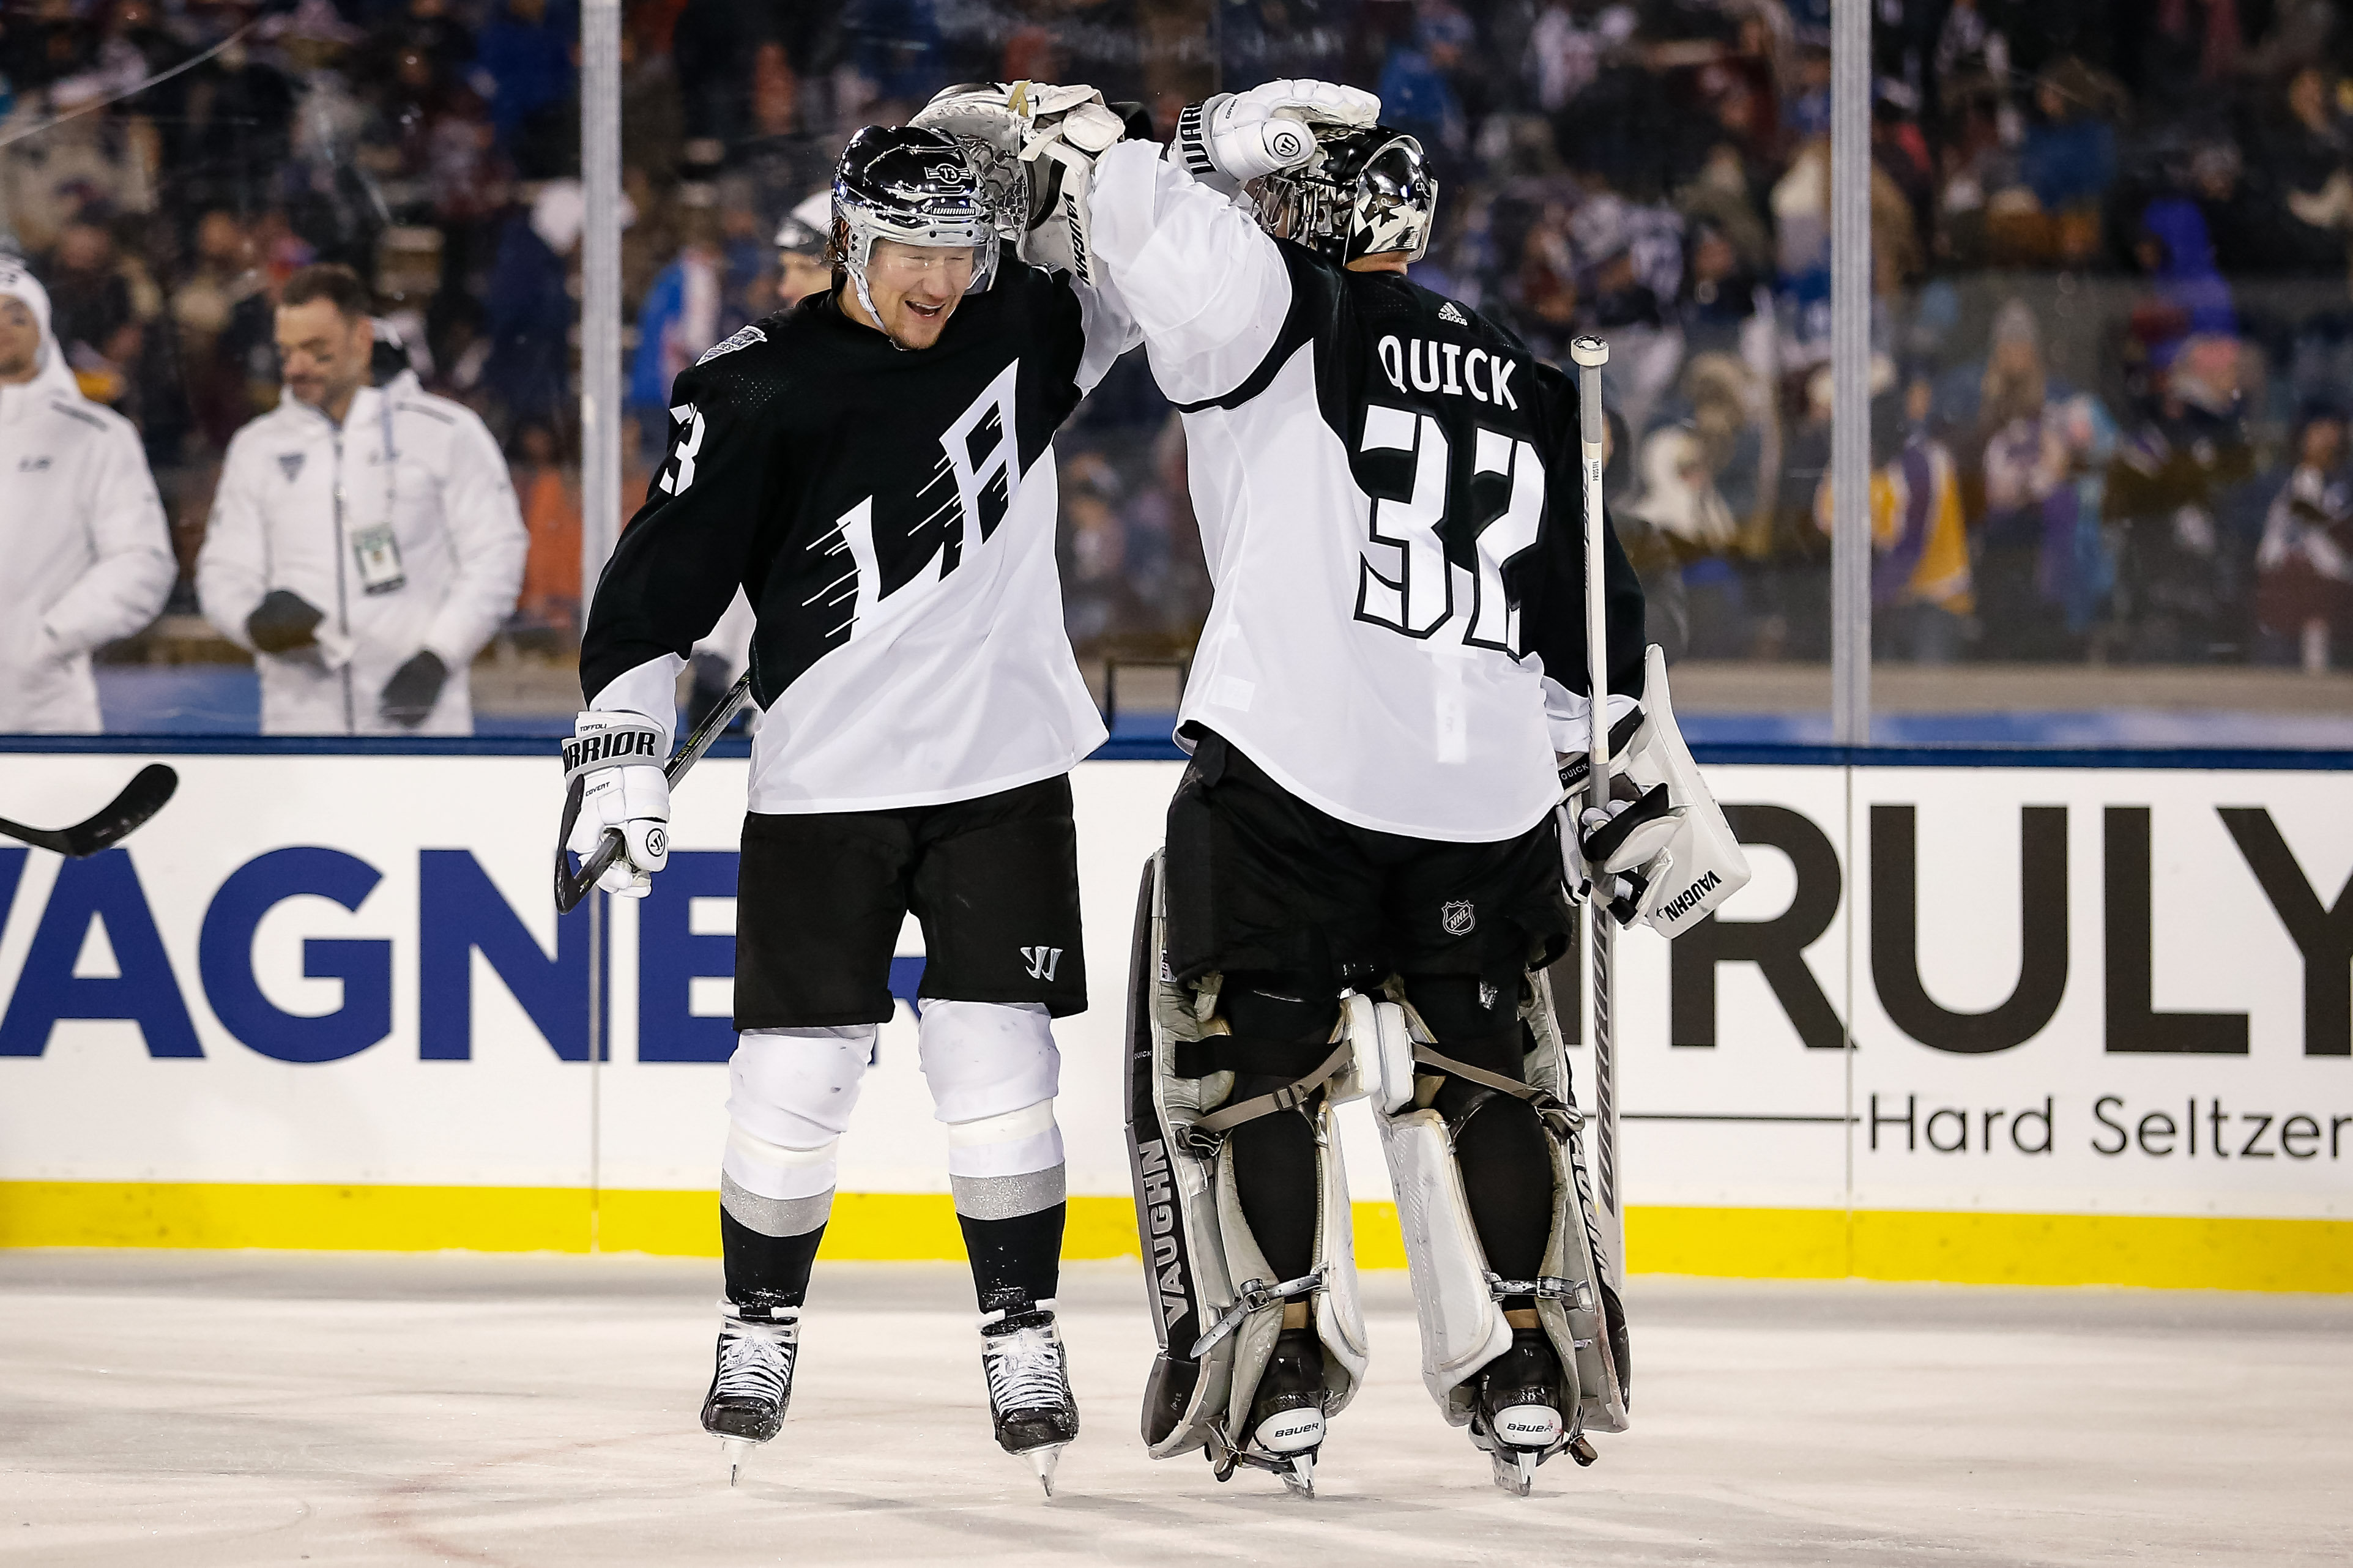 Los Angeles Kings right wing Tyler Toffoli (73) celebrates with goaltender Jonathan Quick (32) after scoring an empty net goal against the Colorado Avalanche in the third period during a Stadium Series hockey game at U.S. Air Force Academy Falcon Stadium.